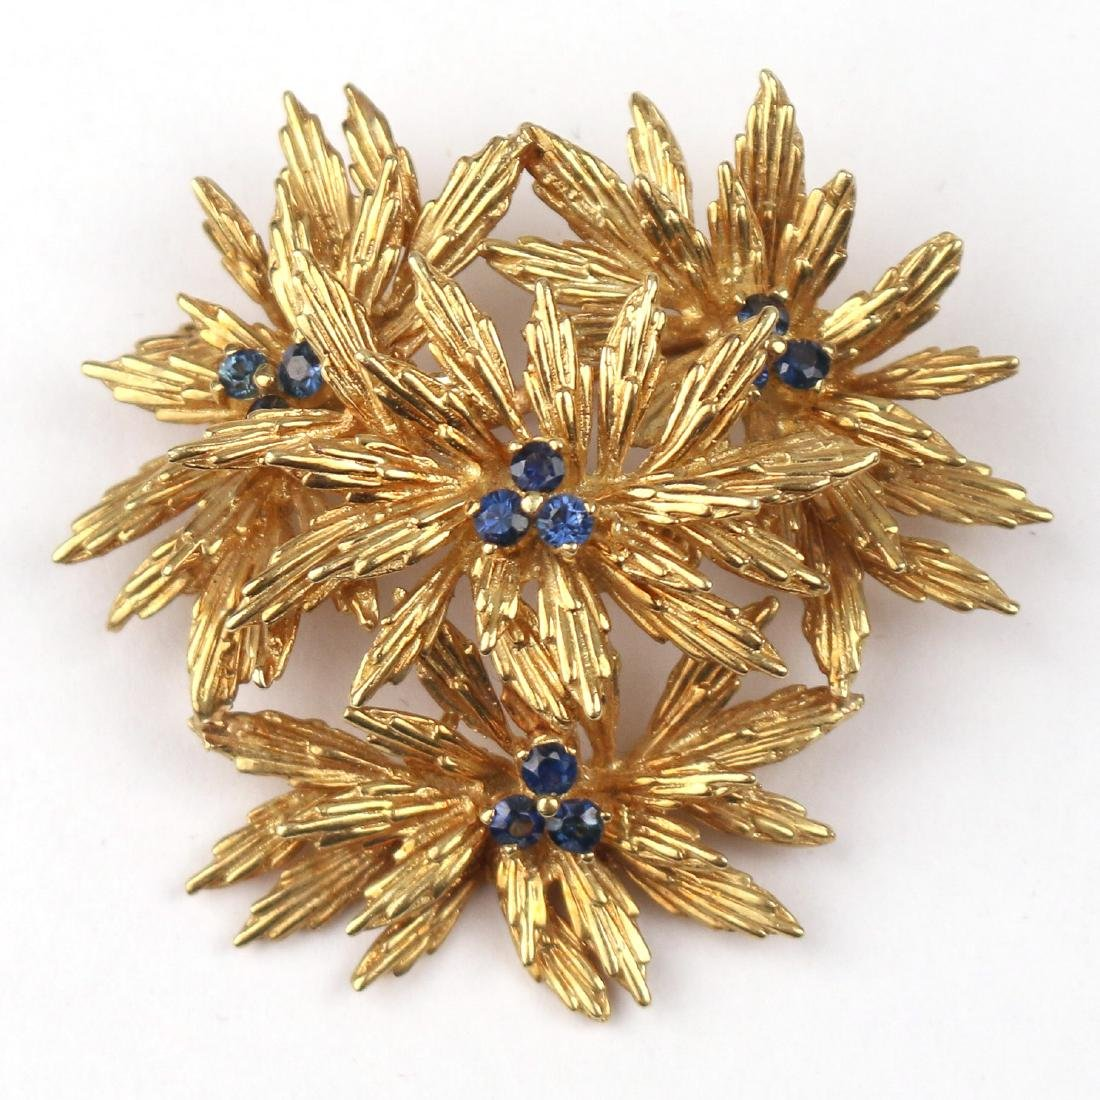 TIFFANY & Co. SAPPHIRE & GOLD PIN